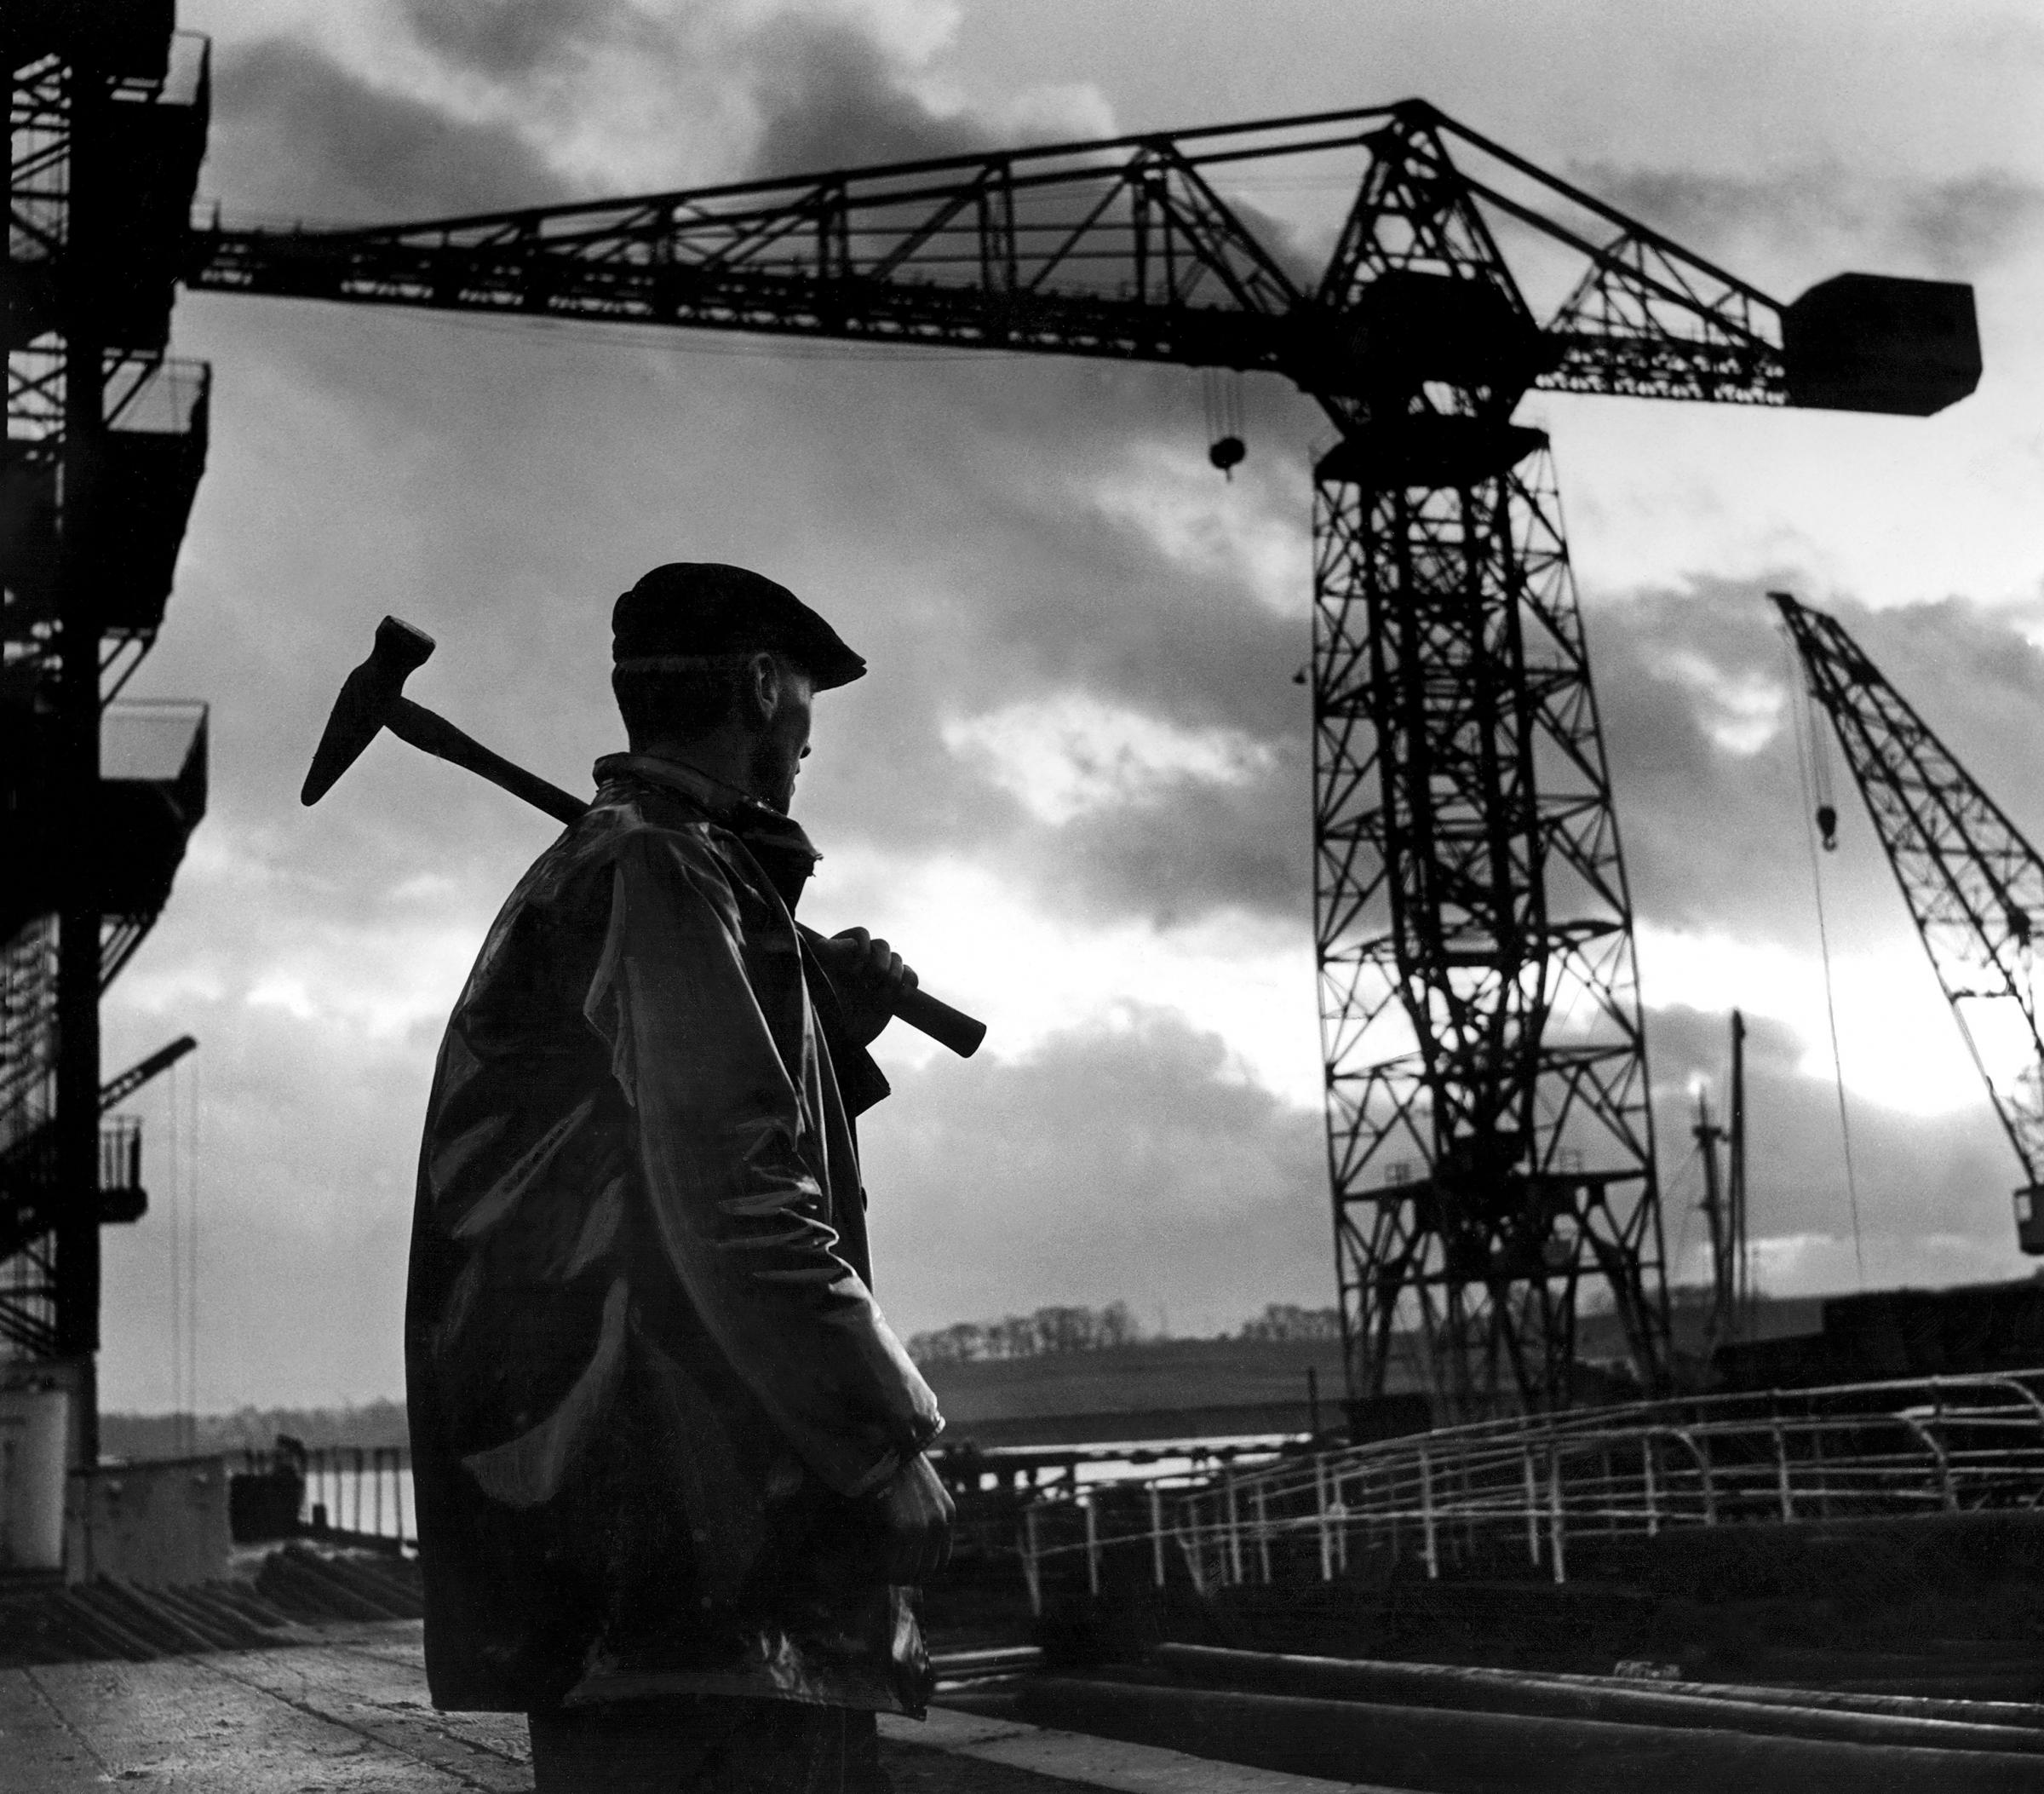 Glasgow memories : From the old shipyards to the factory floor